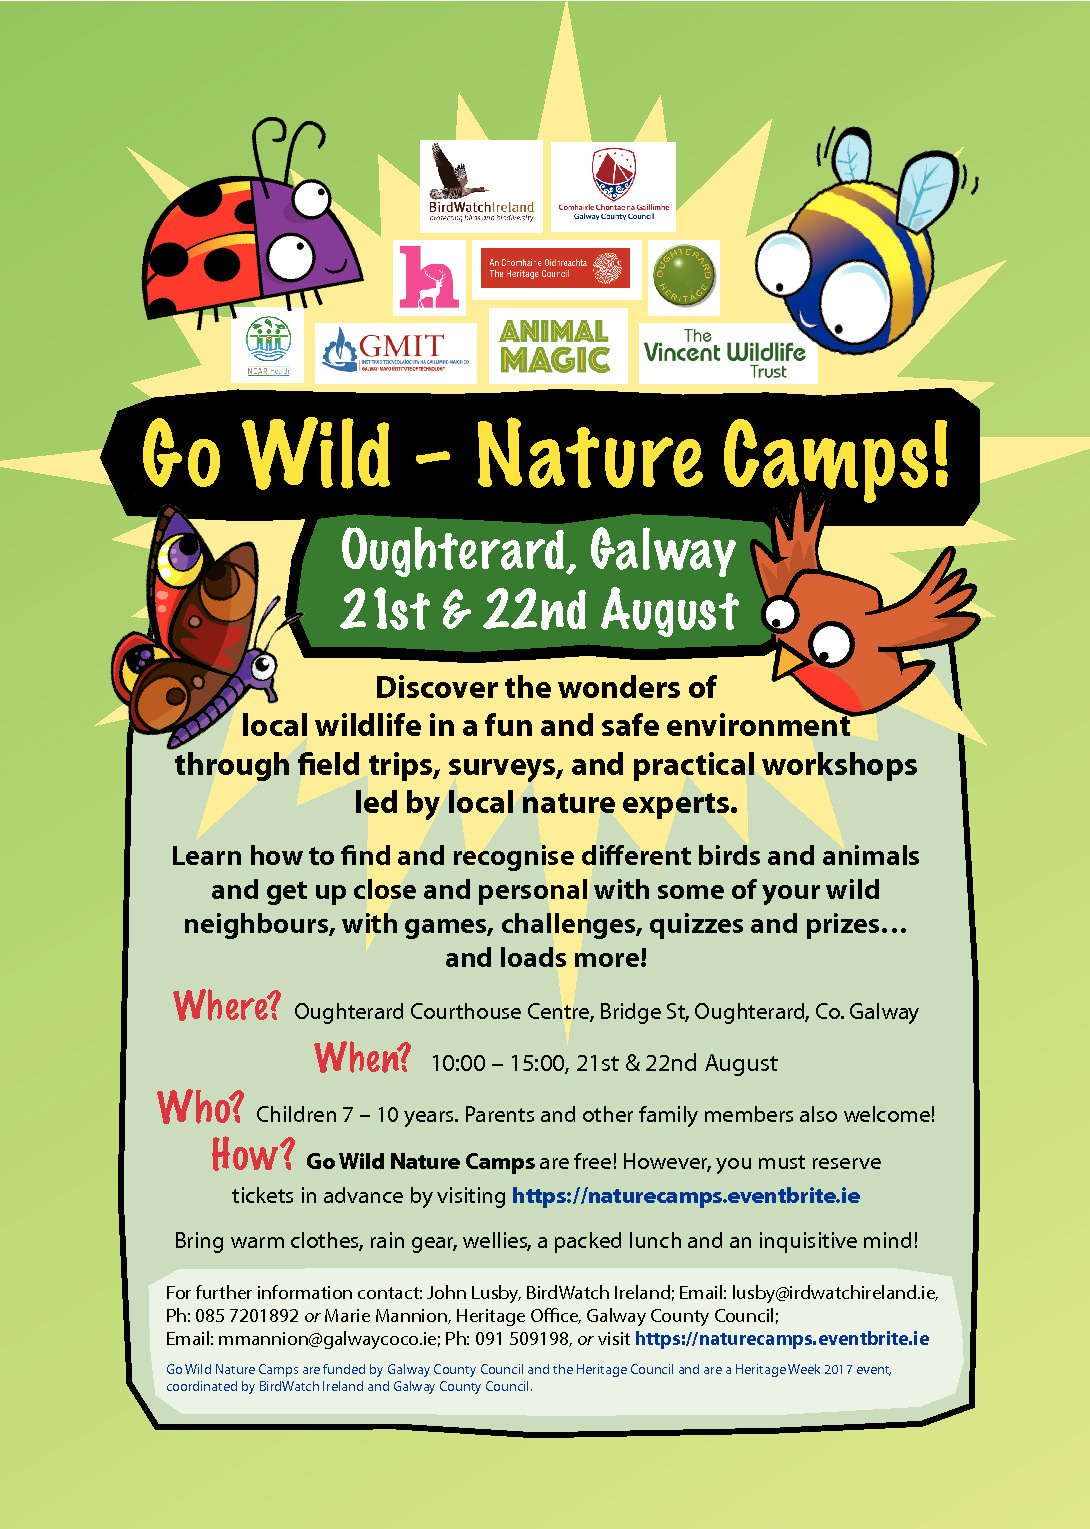 Go Wild Nature Camps Oughterard August 21st 22nd 2017